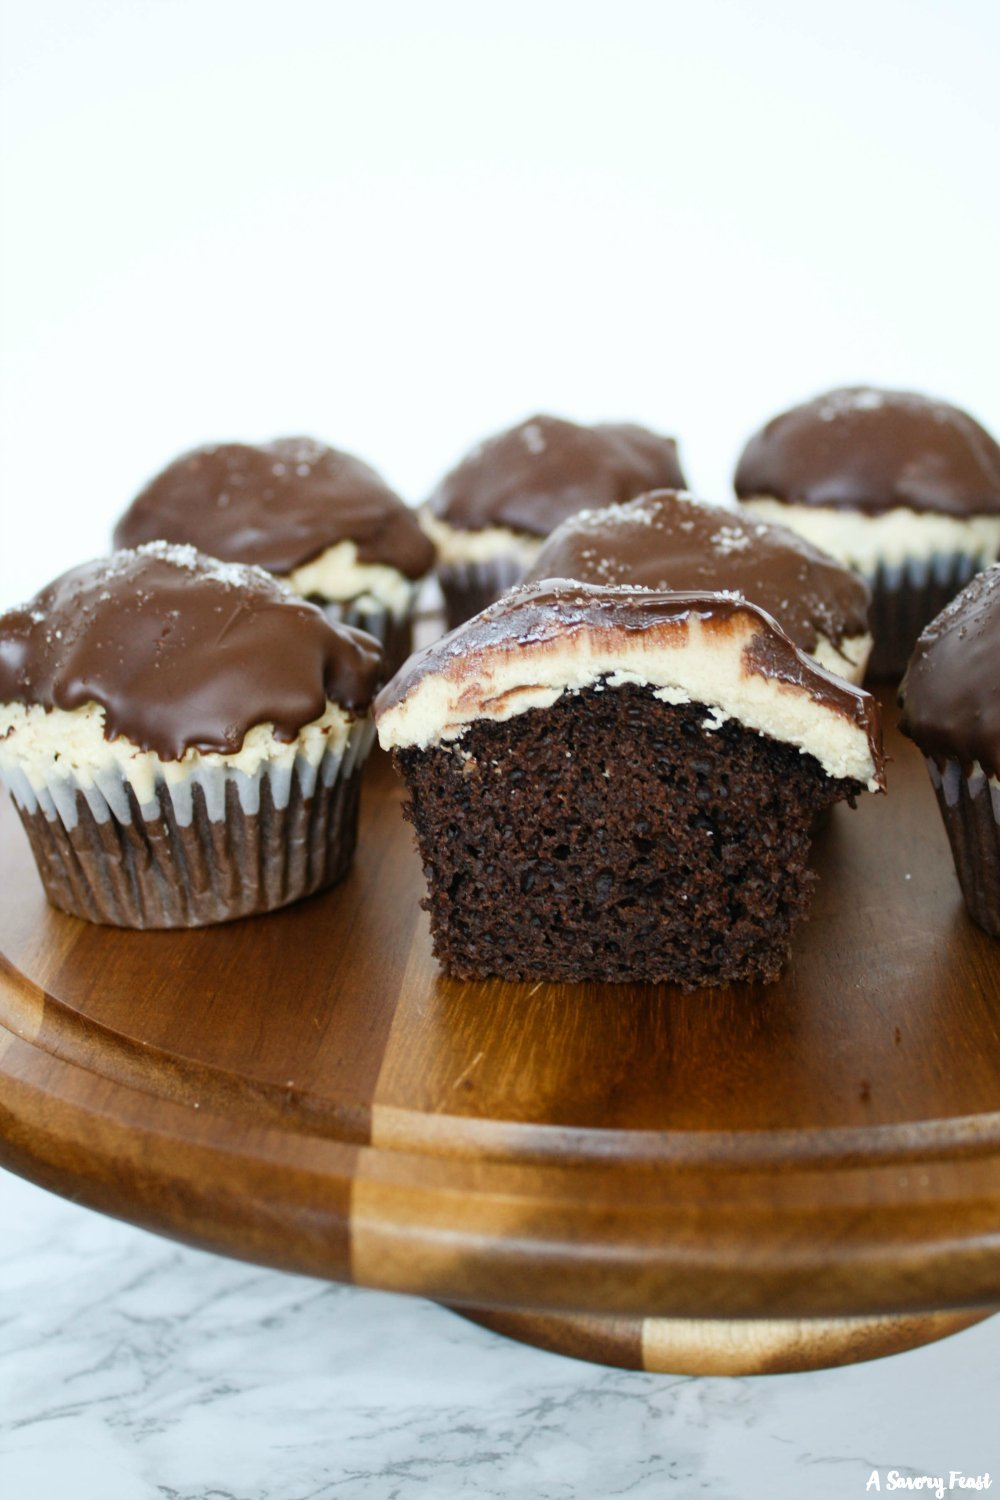 Dress up a boxed cake mix with this Salted Caramel Chocolate Dipped Cupcakes recipe.